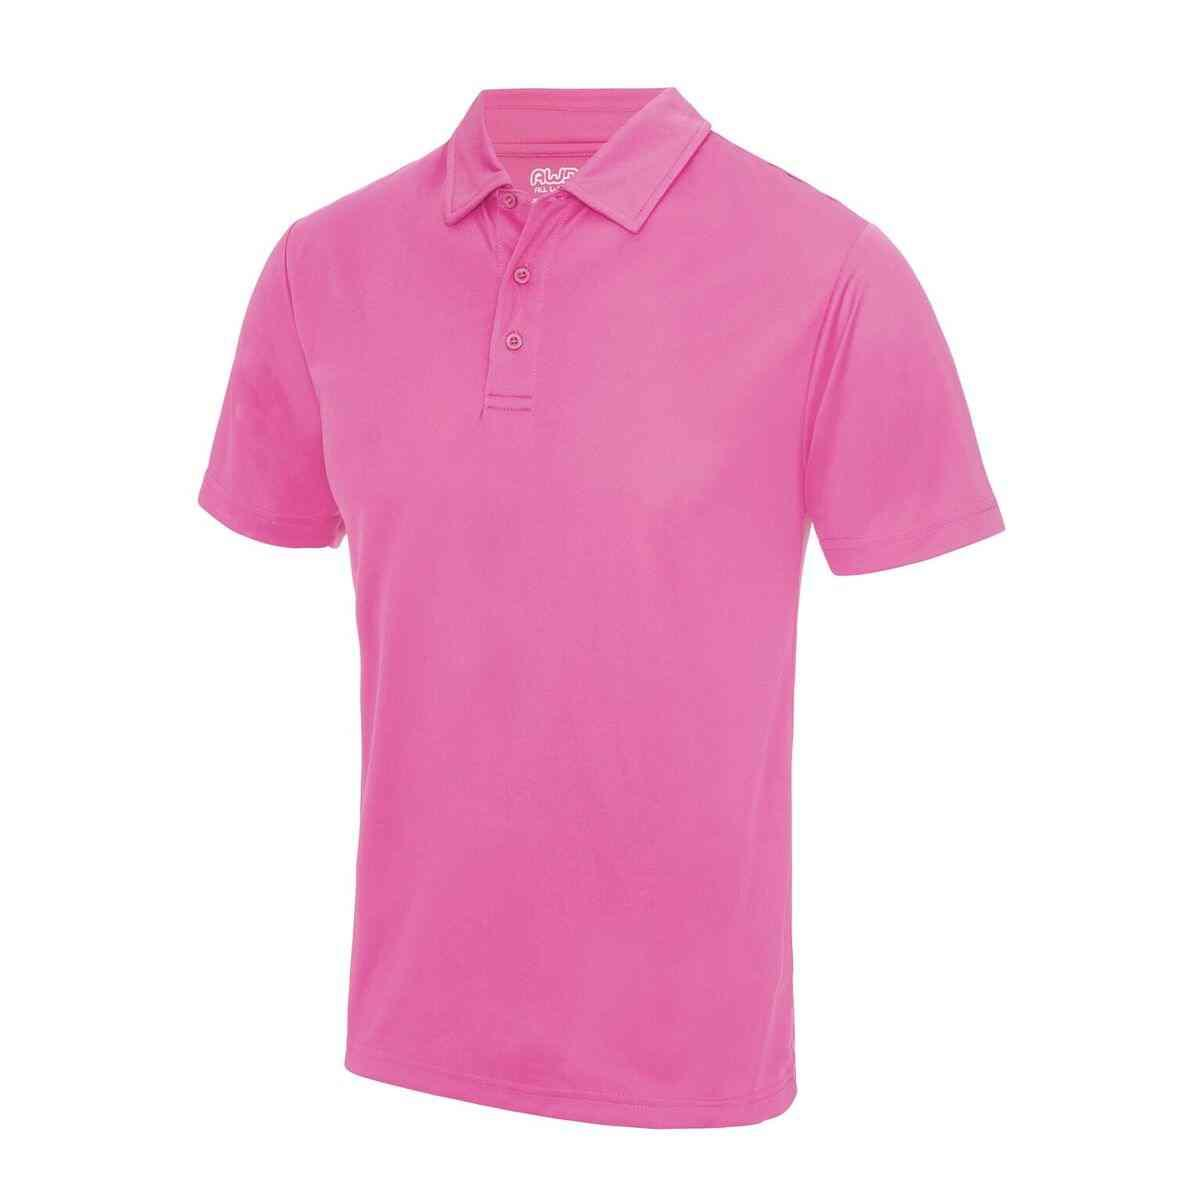 Electric Pink Poolside Polo Shirt